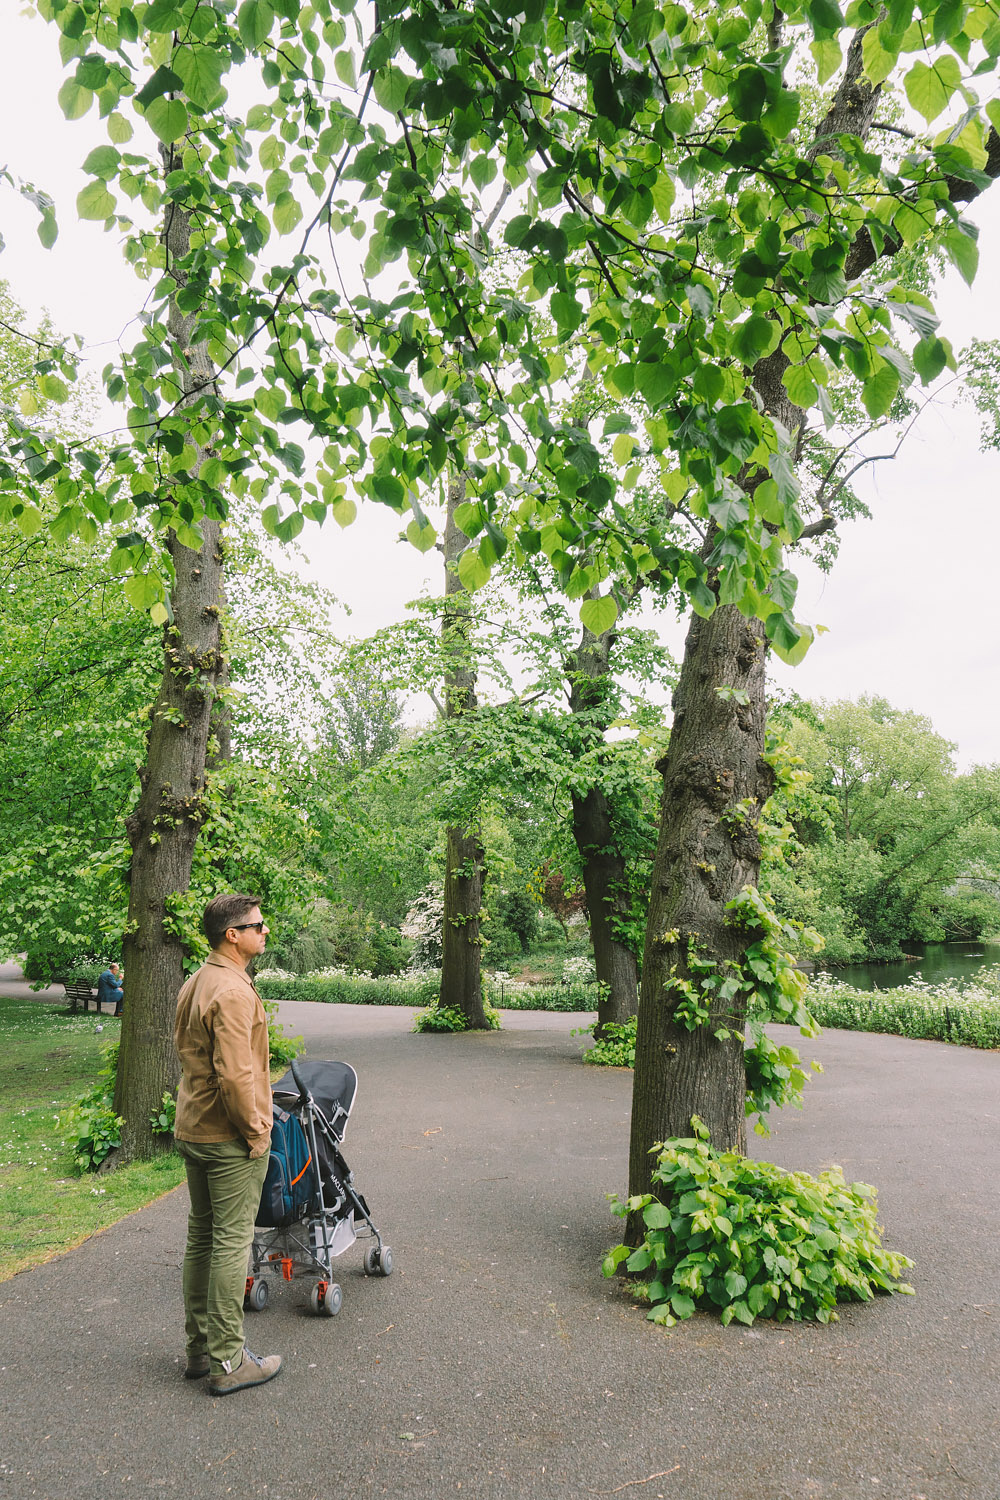 Wandering around Regent's PArk